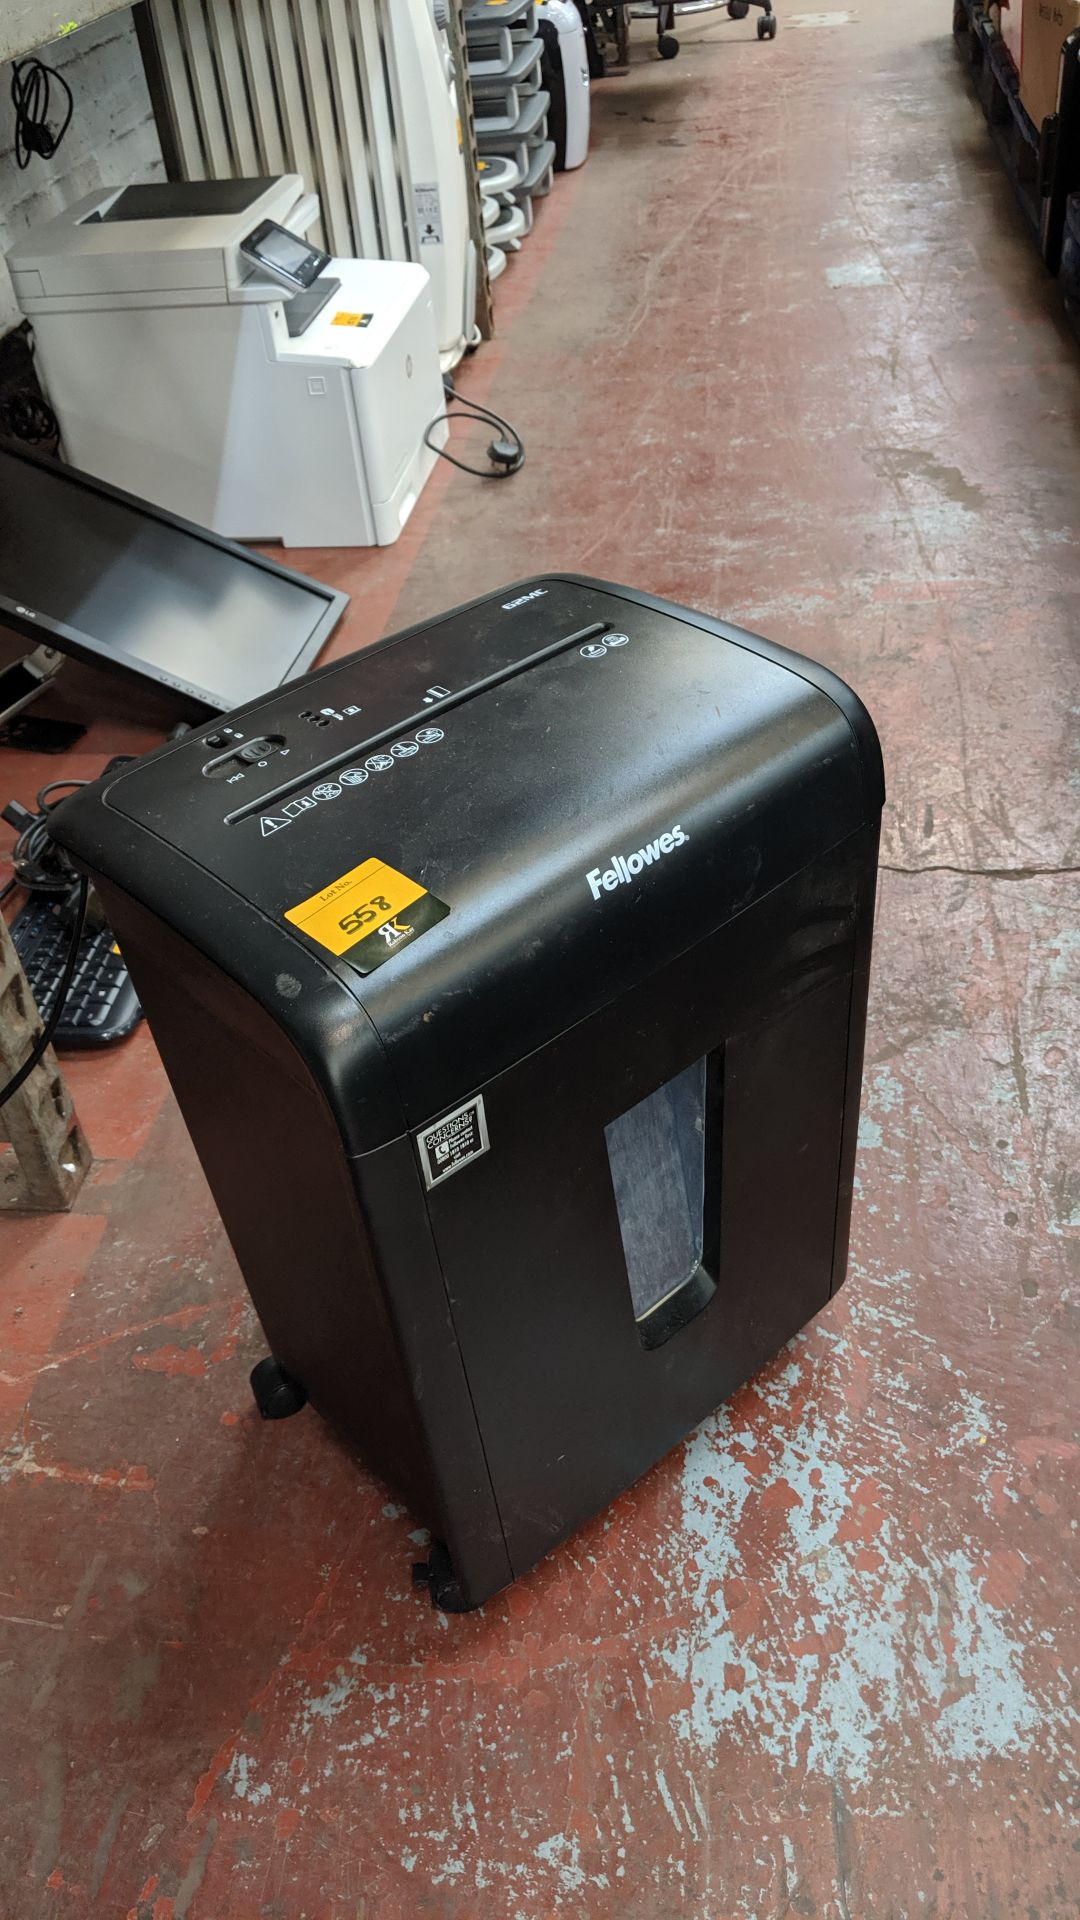 Lot 558 - Fellowes 62MC shredder. This is one of a large number of lots used/owned by One To One (North